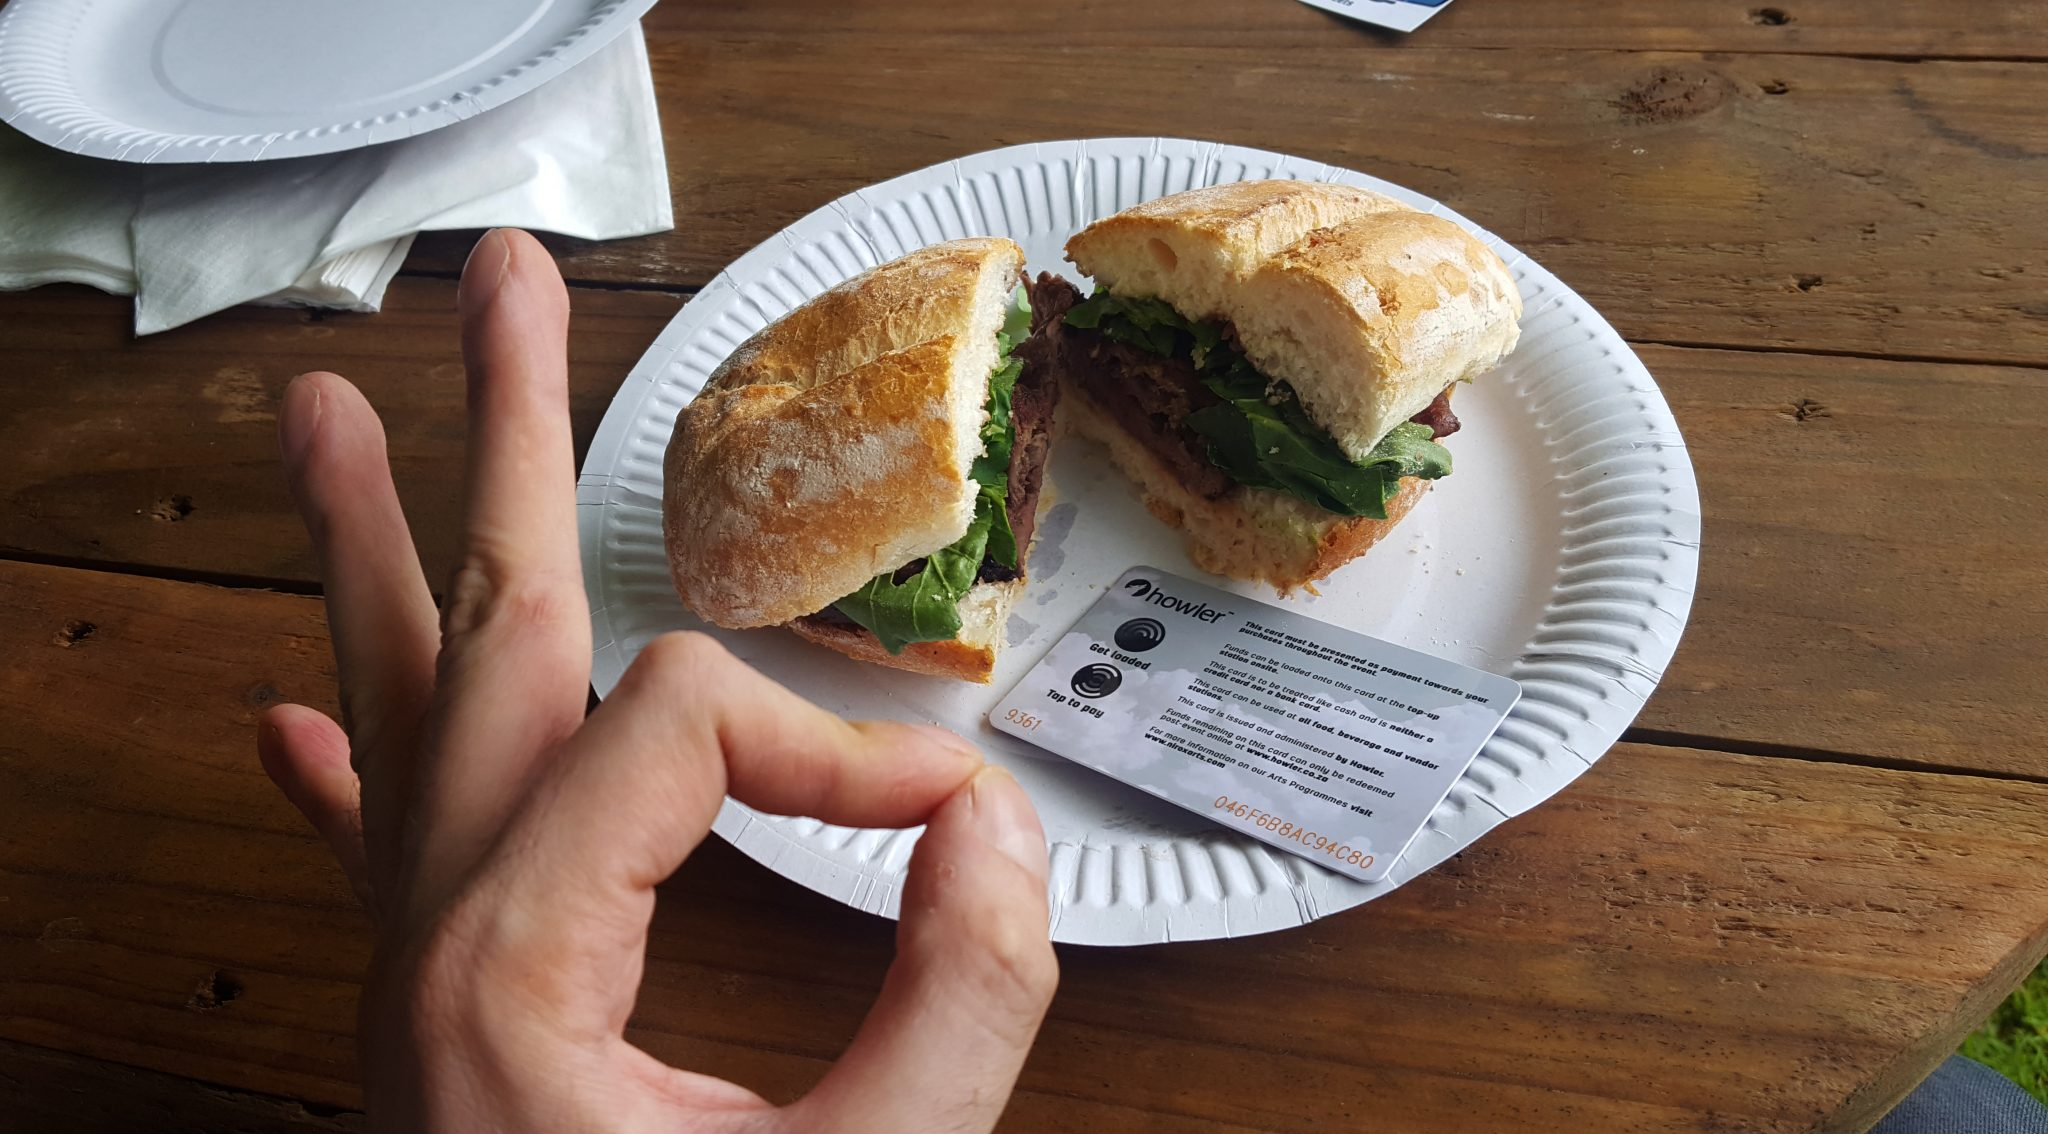 Sandwich and Howler Card